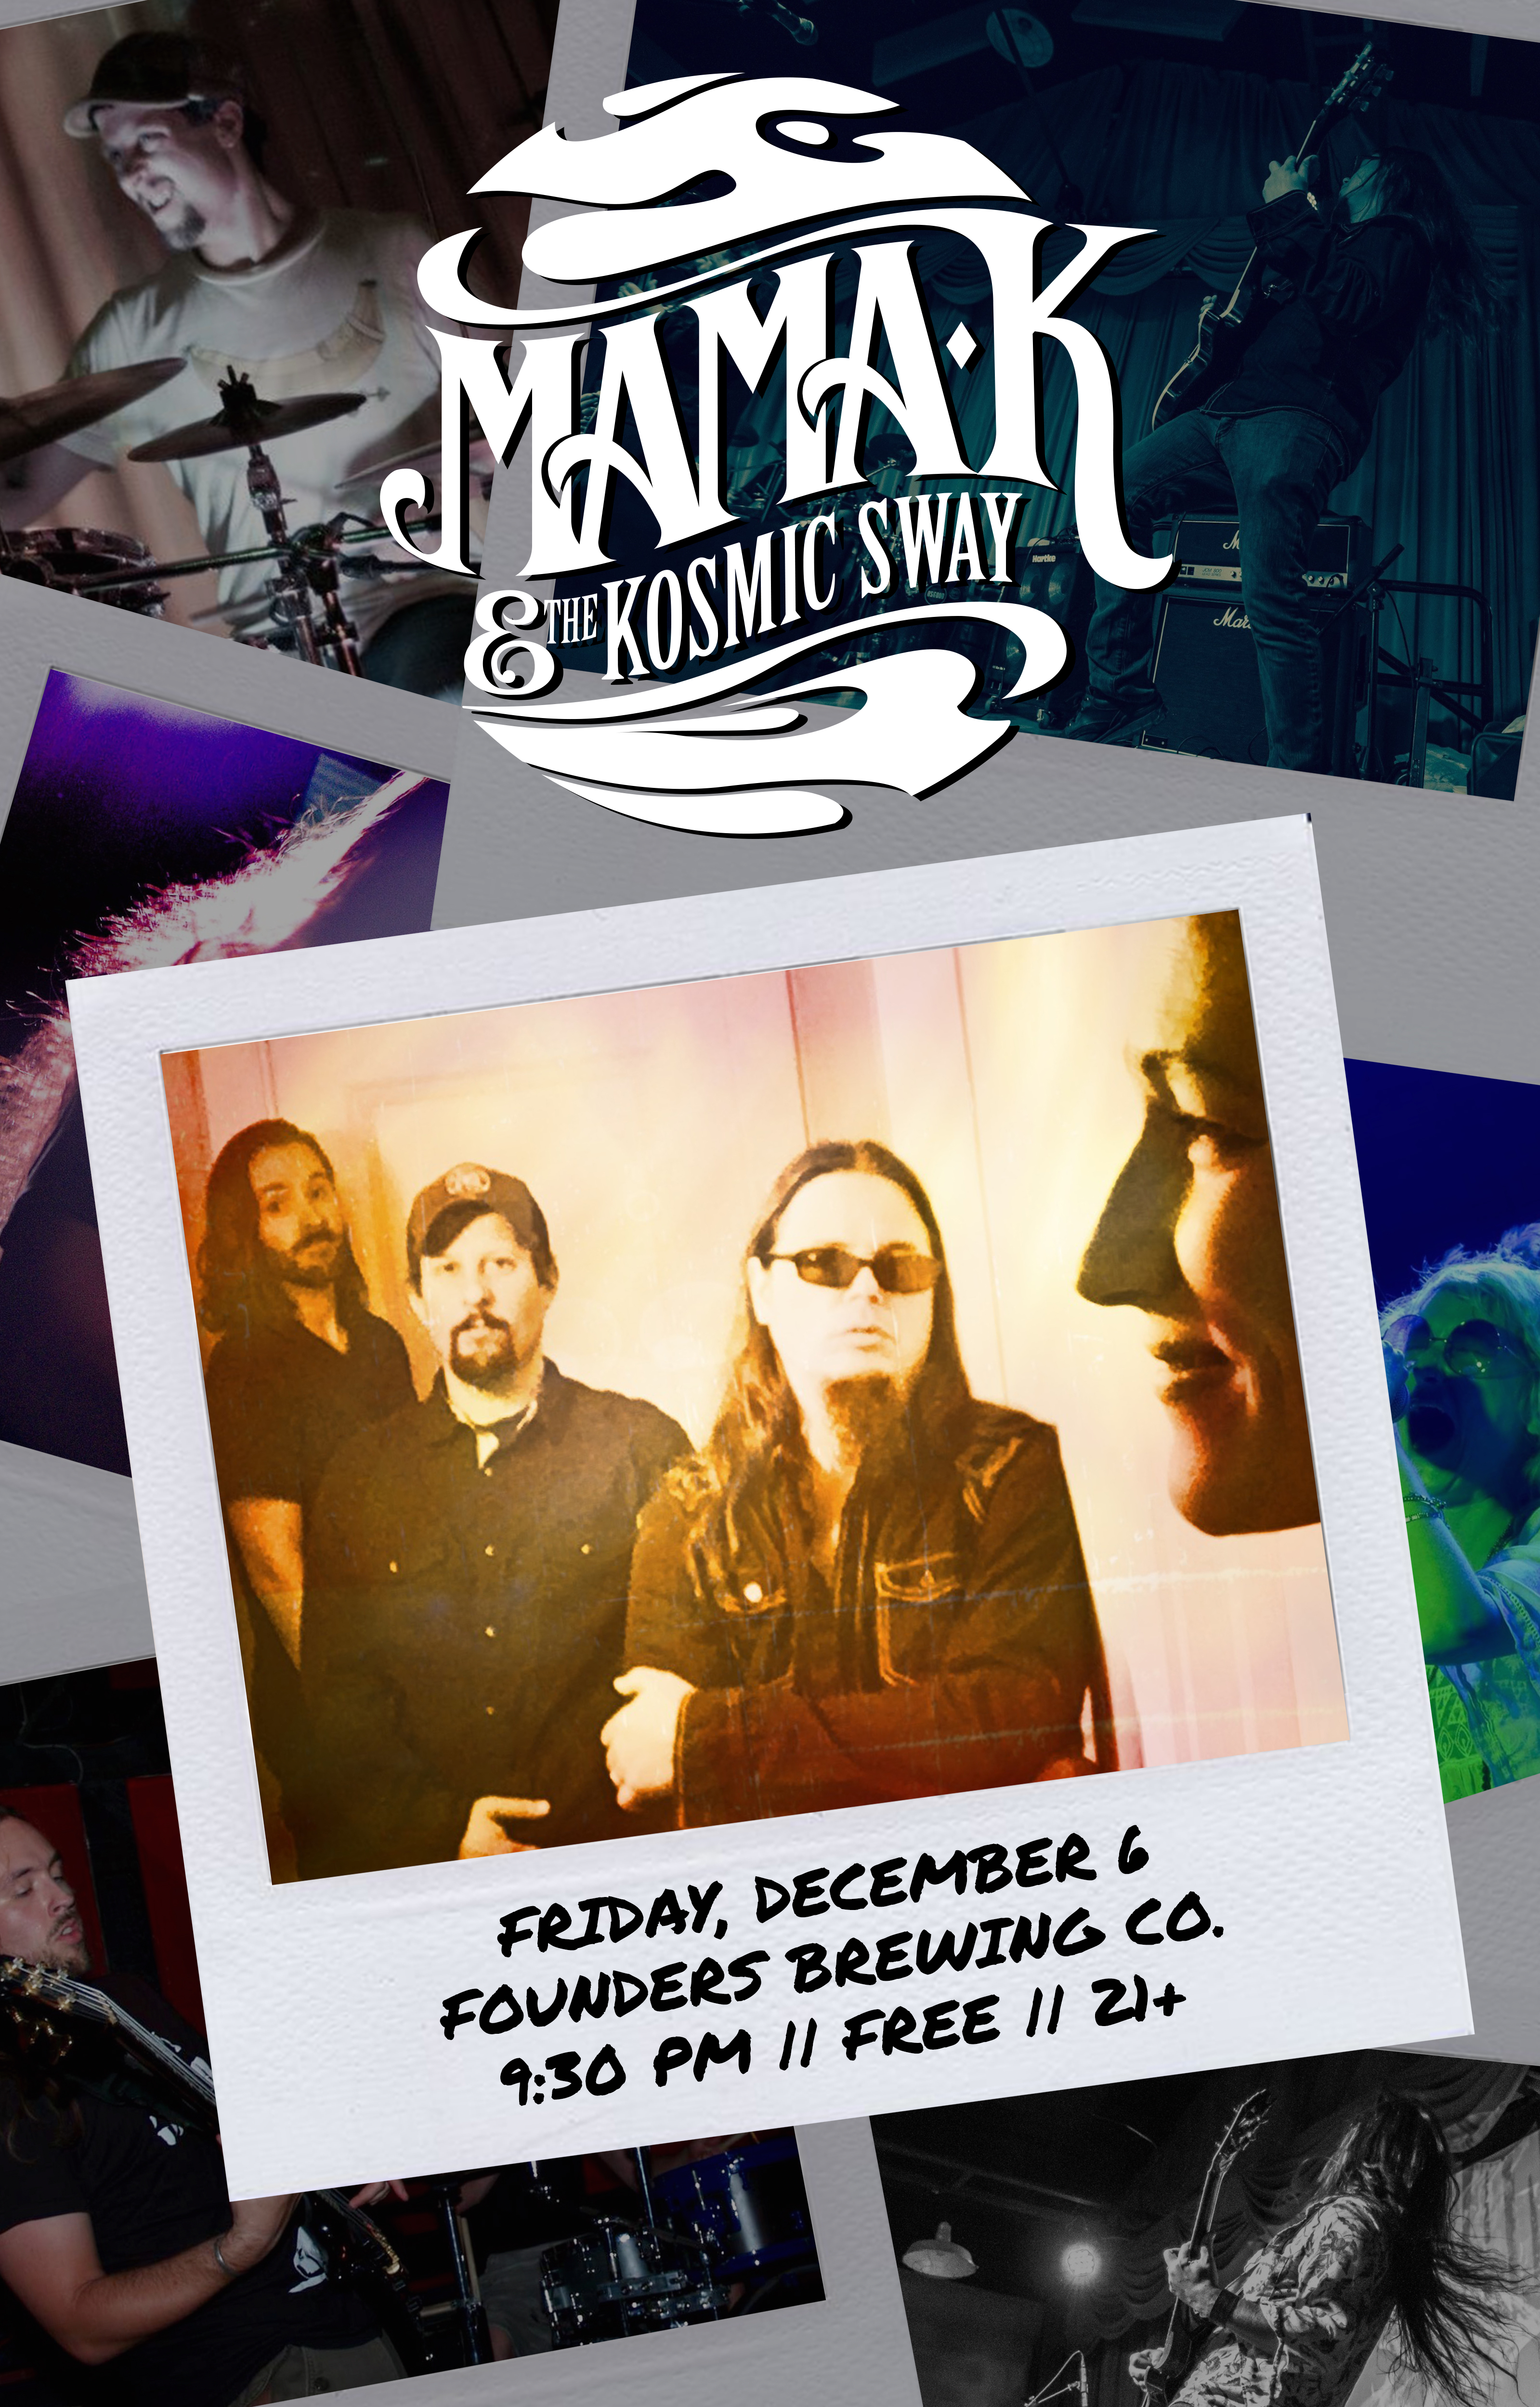 Mama K & The Kosmic Sway event poster hosted by Founders Brewing Co.